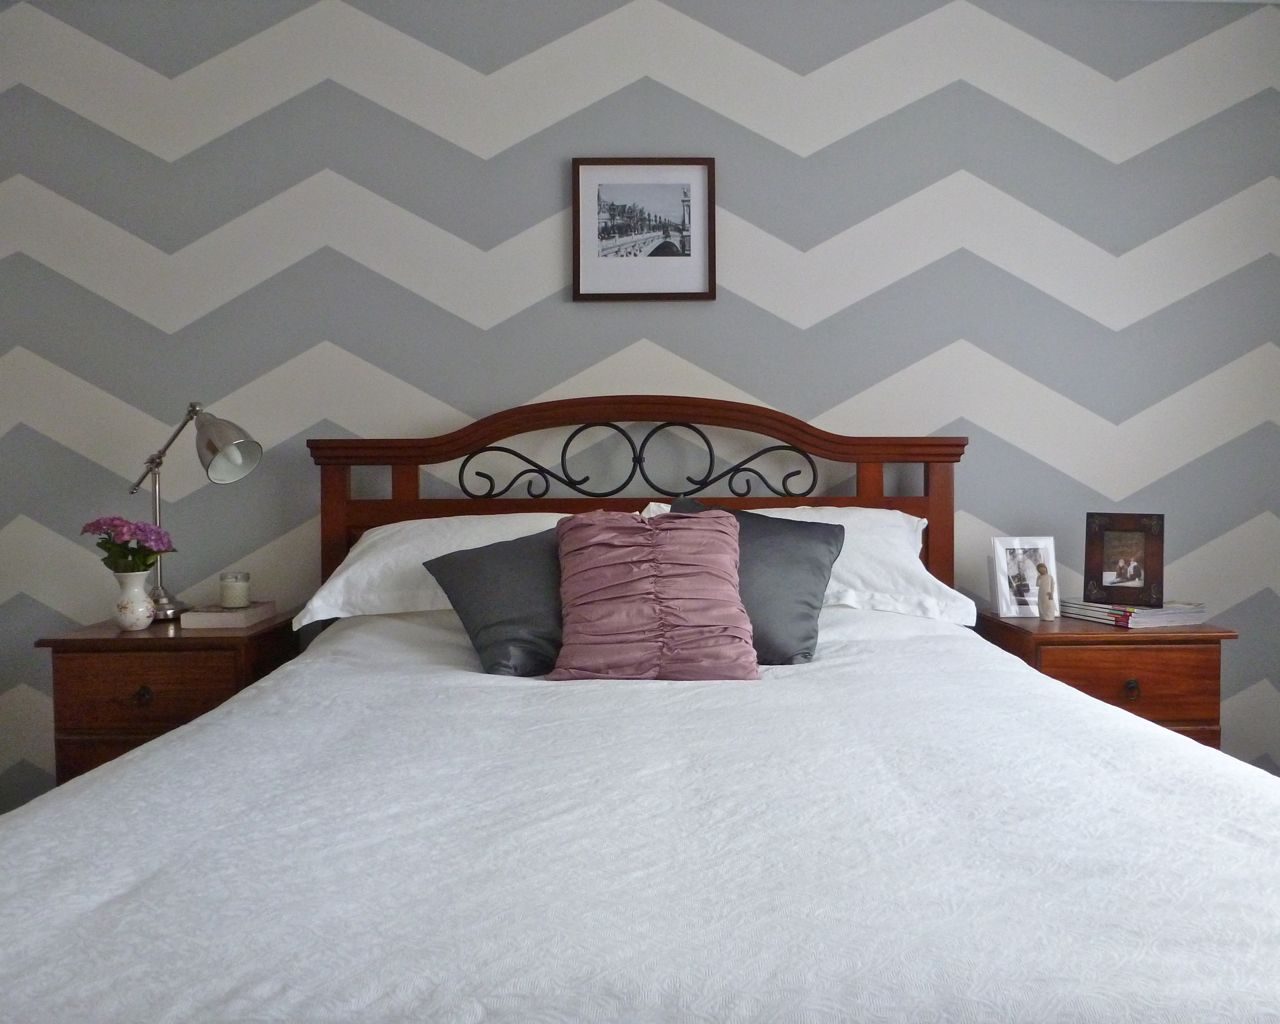 Bedroom wall patterns painting - Chevron Wall 5